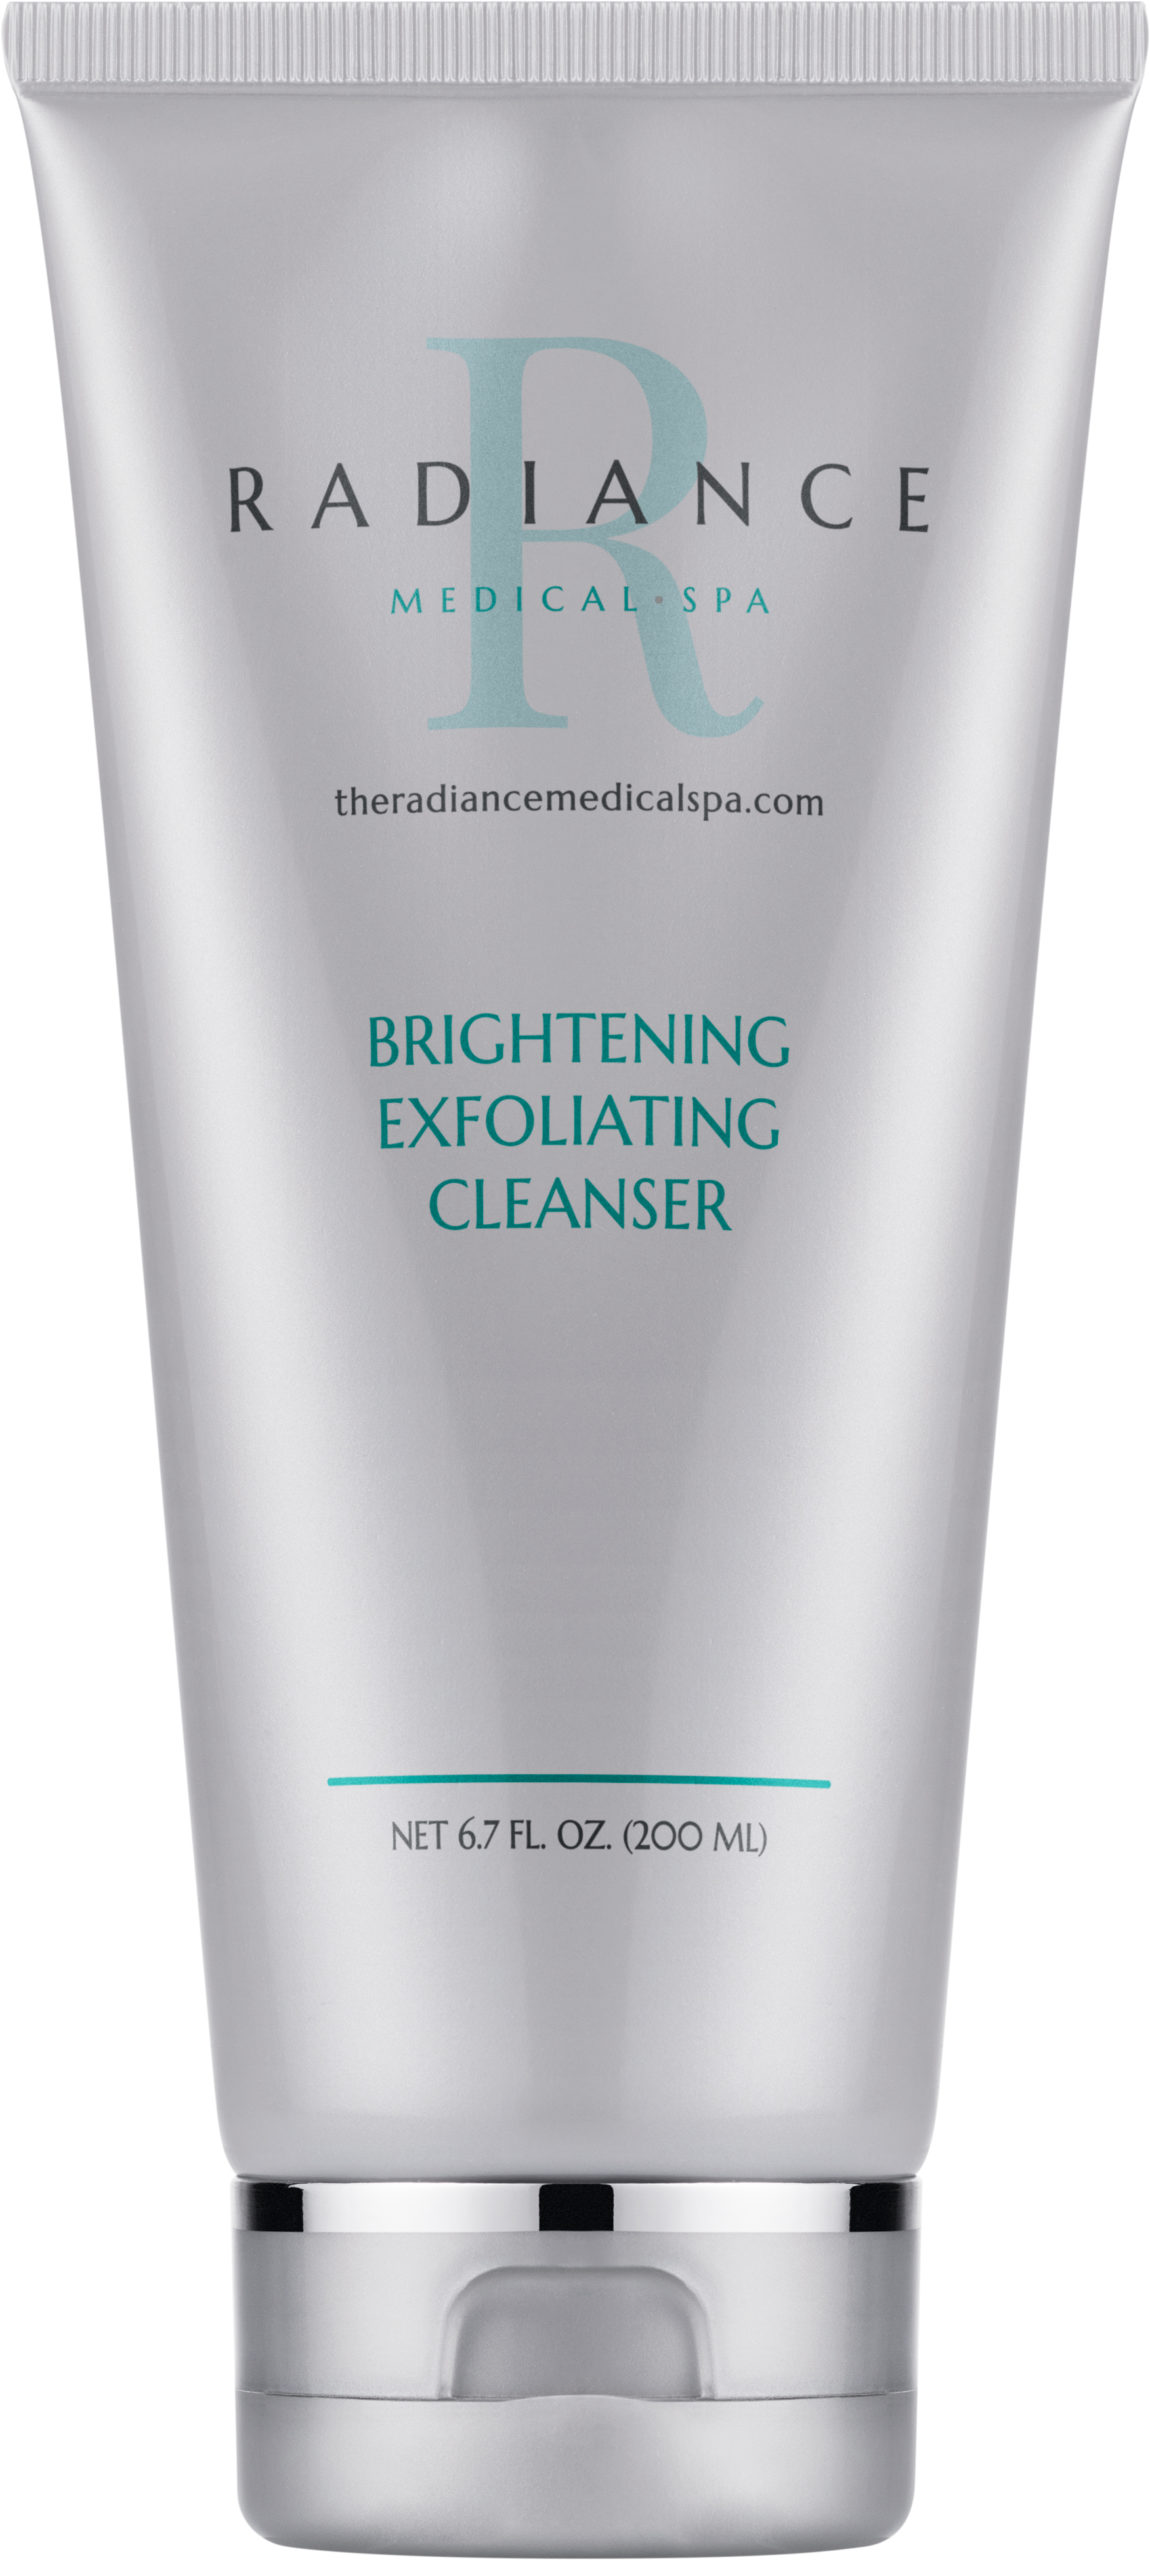 Brightening Exfoliating Cleanser